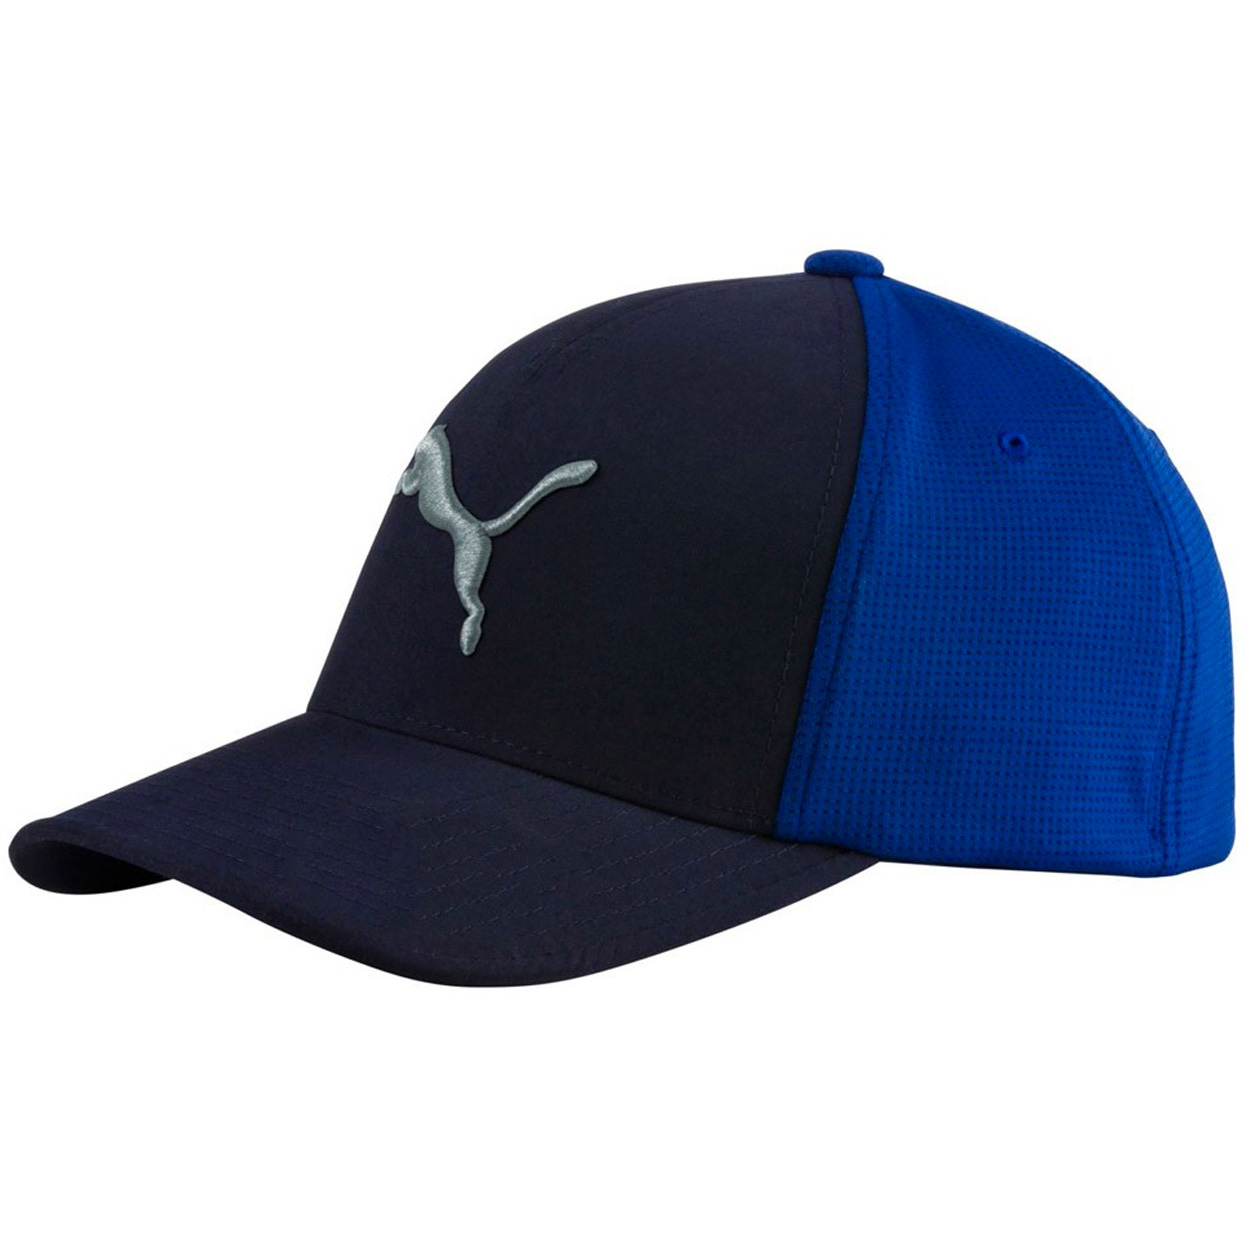 8cd886843f6 Puma Front 9 Flexfit Golf Hat - GolfEtail.com